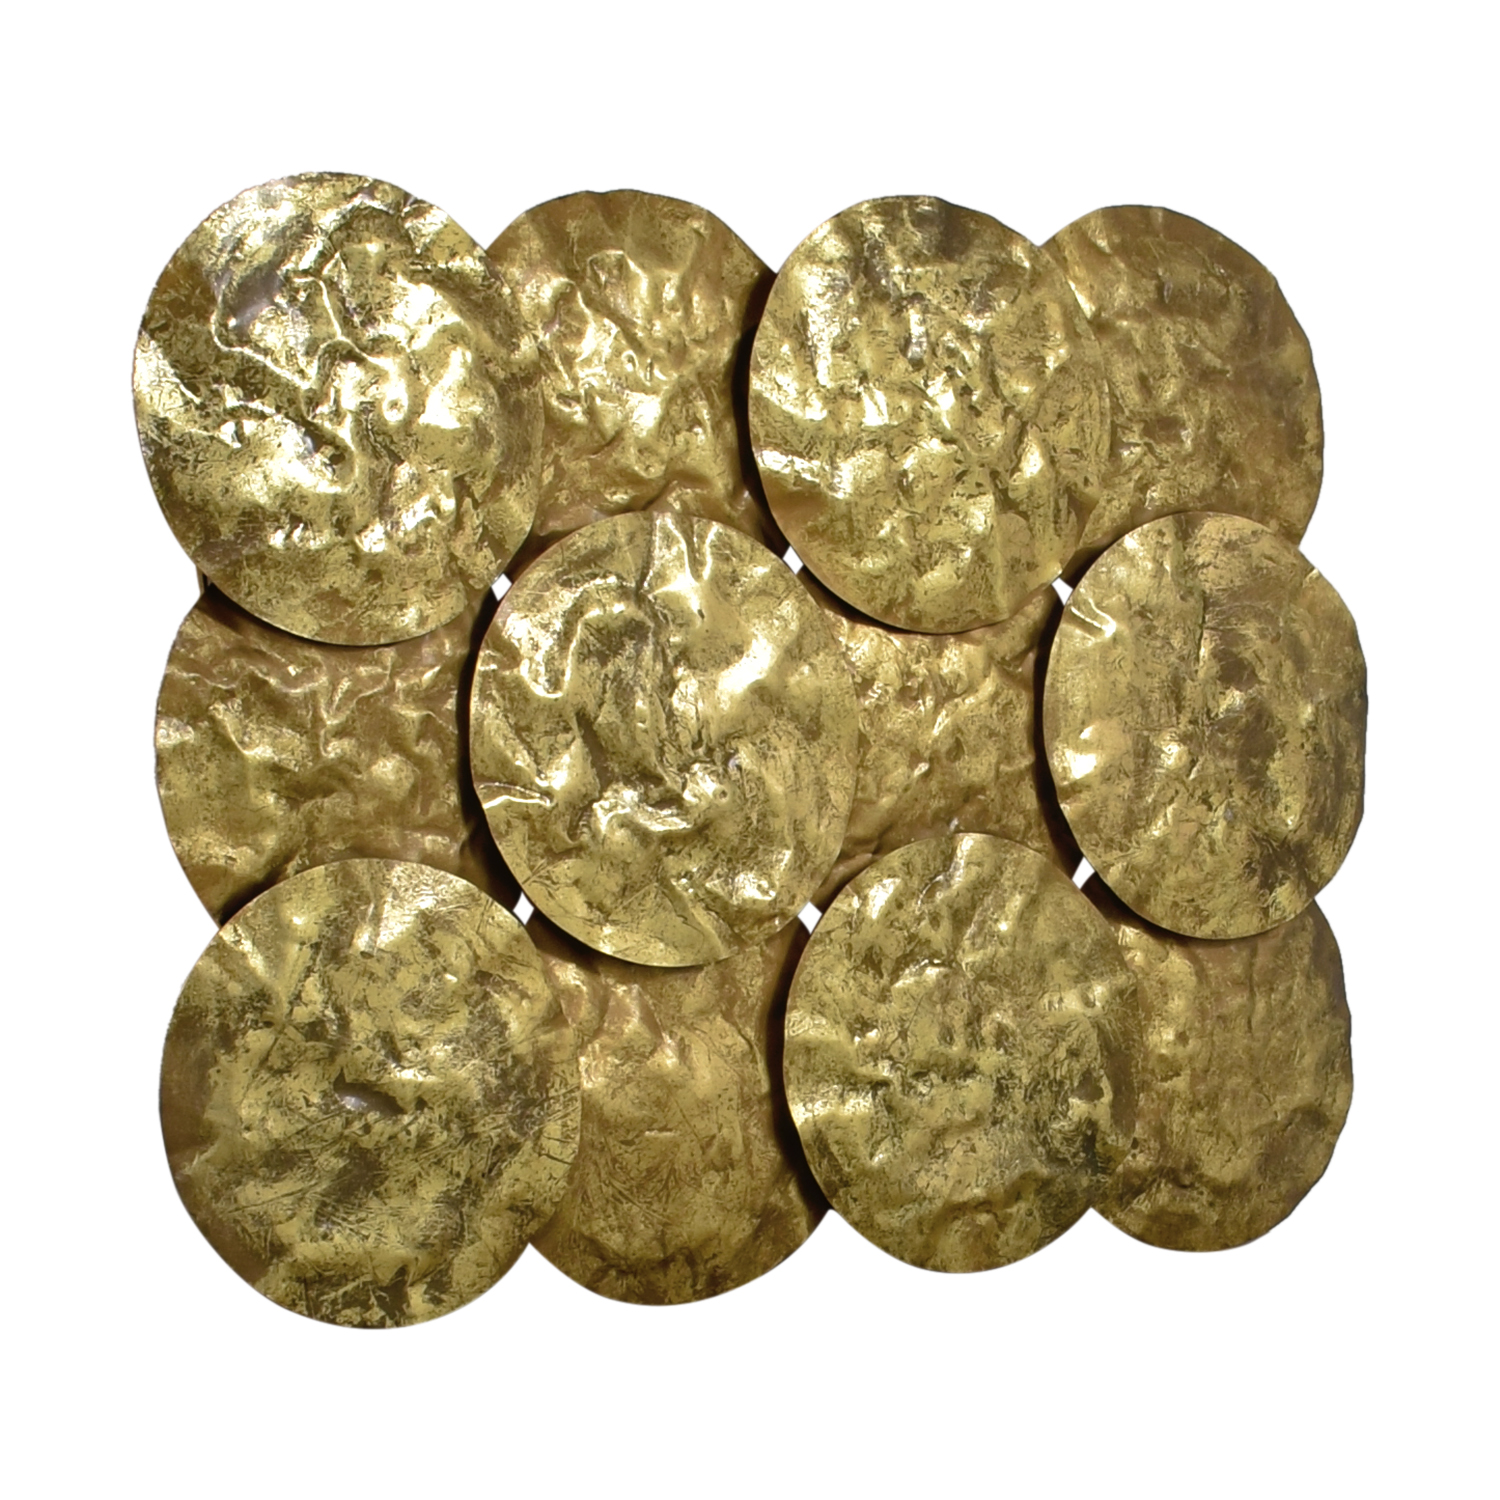 Gold Disks Wall Collage nj